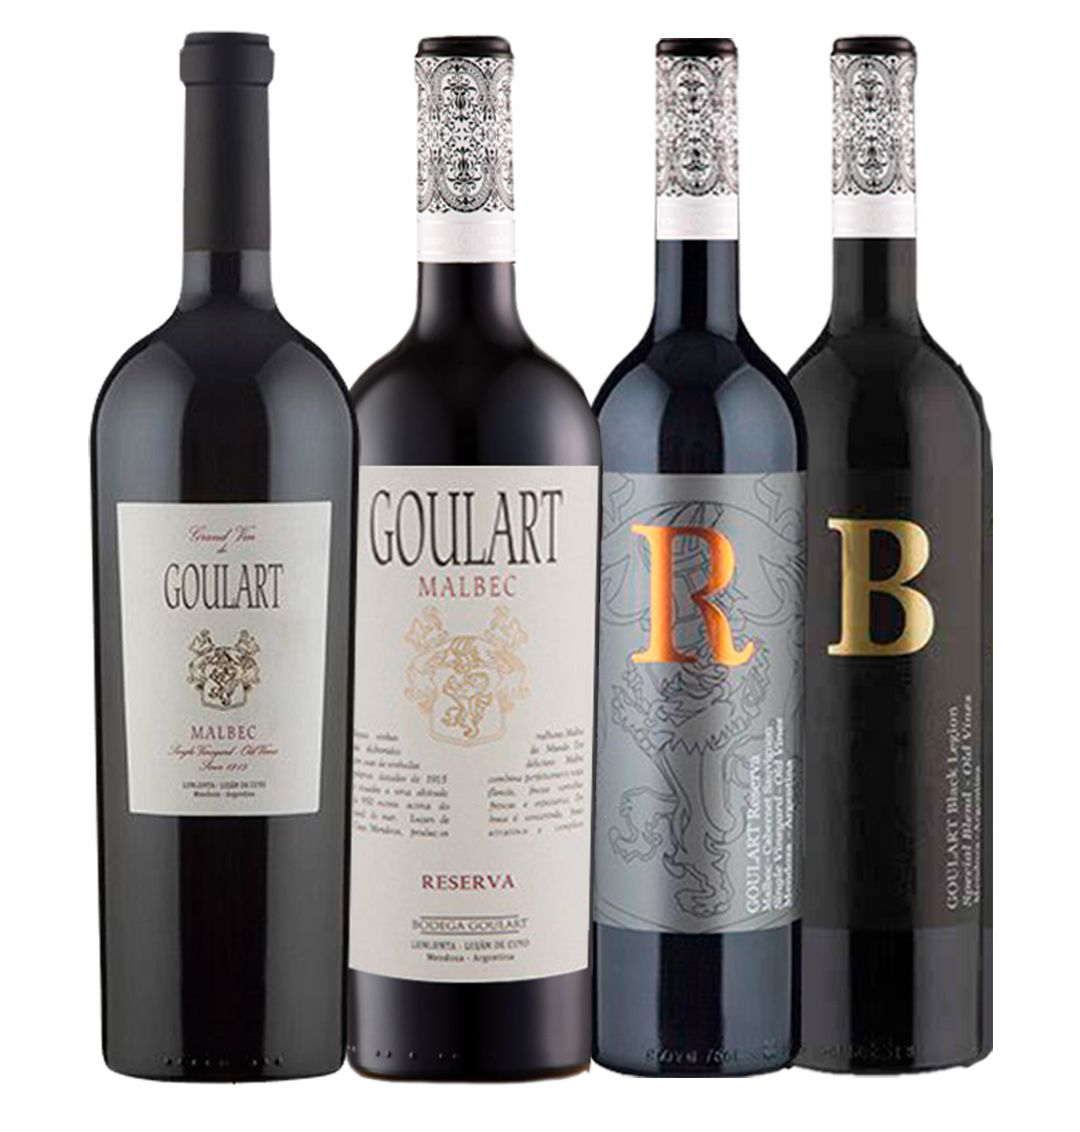 BEST WINES 4 * GRAND VIN e SUPER BLENDS (VIVINO 4.0 e 4.1)